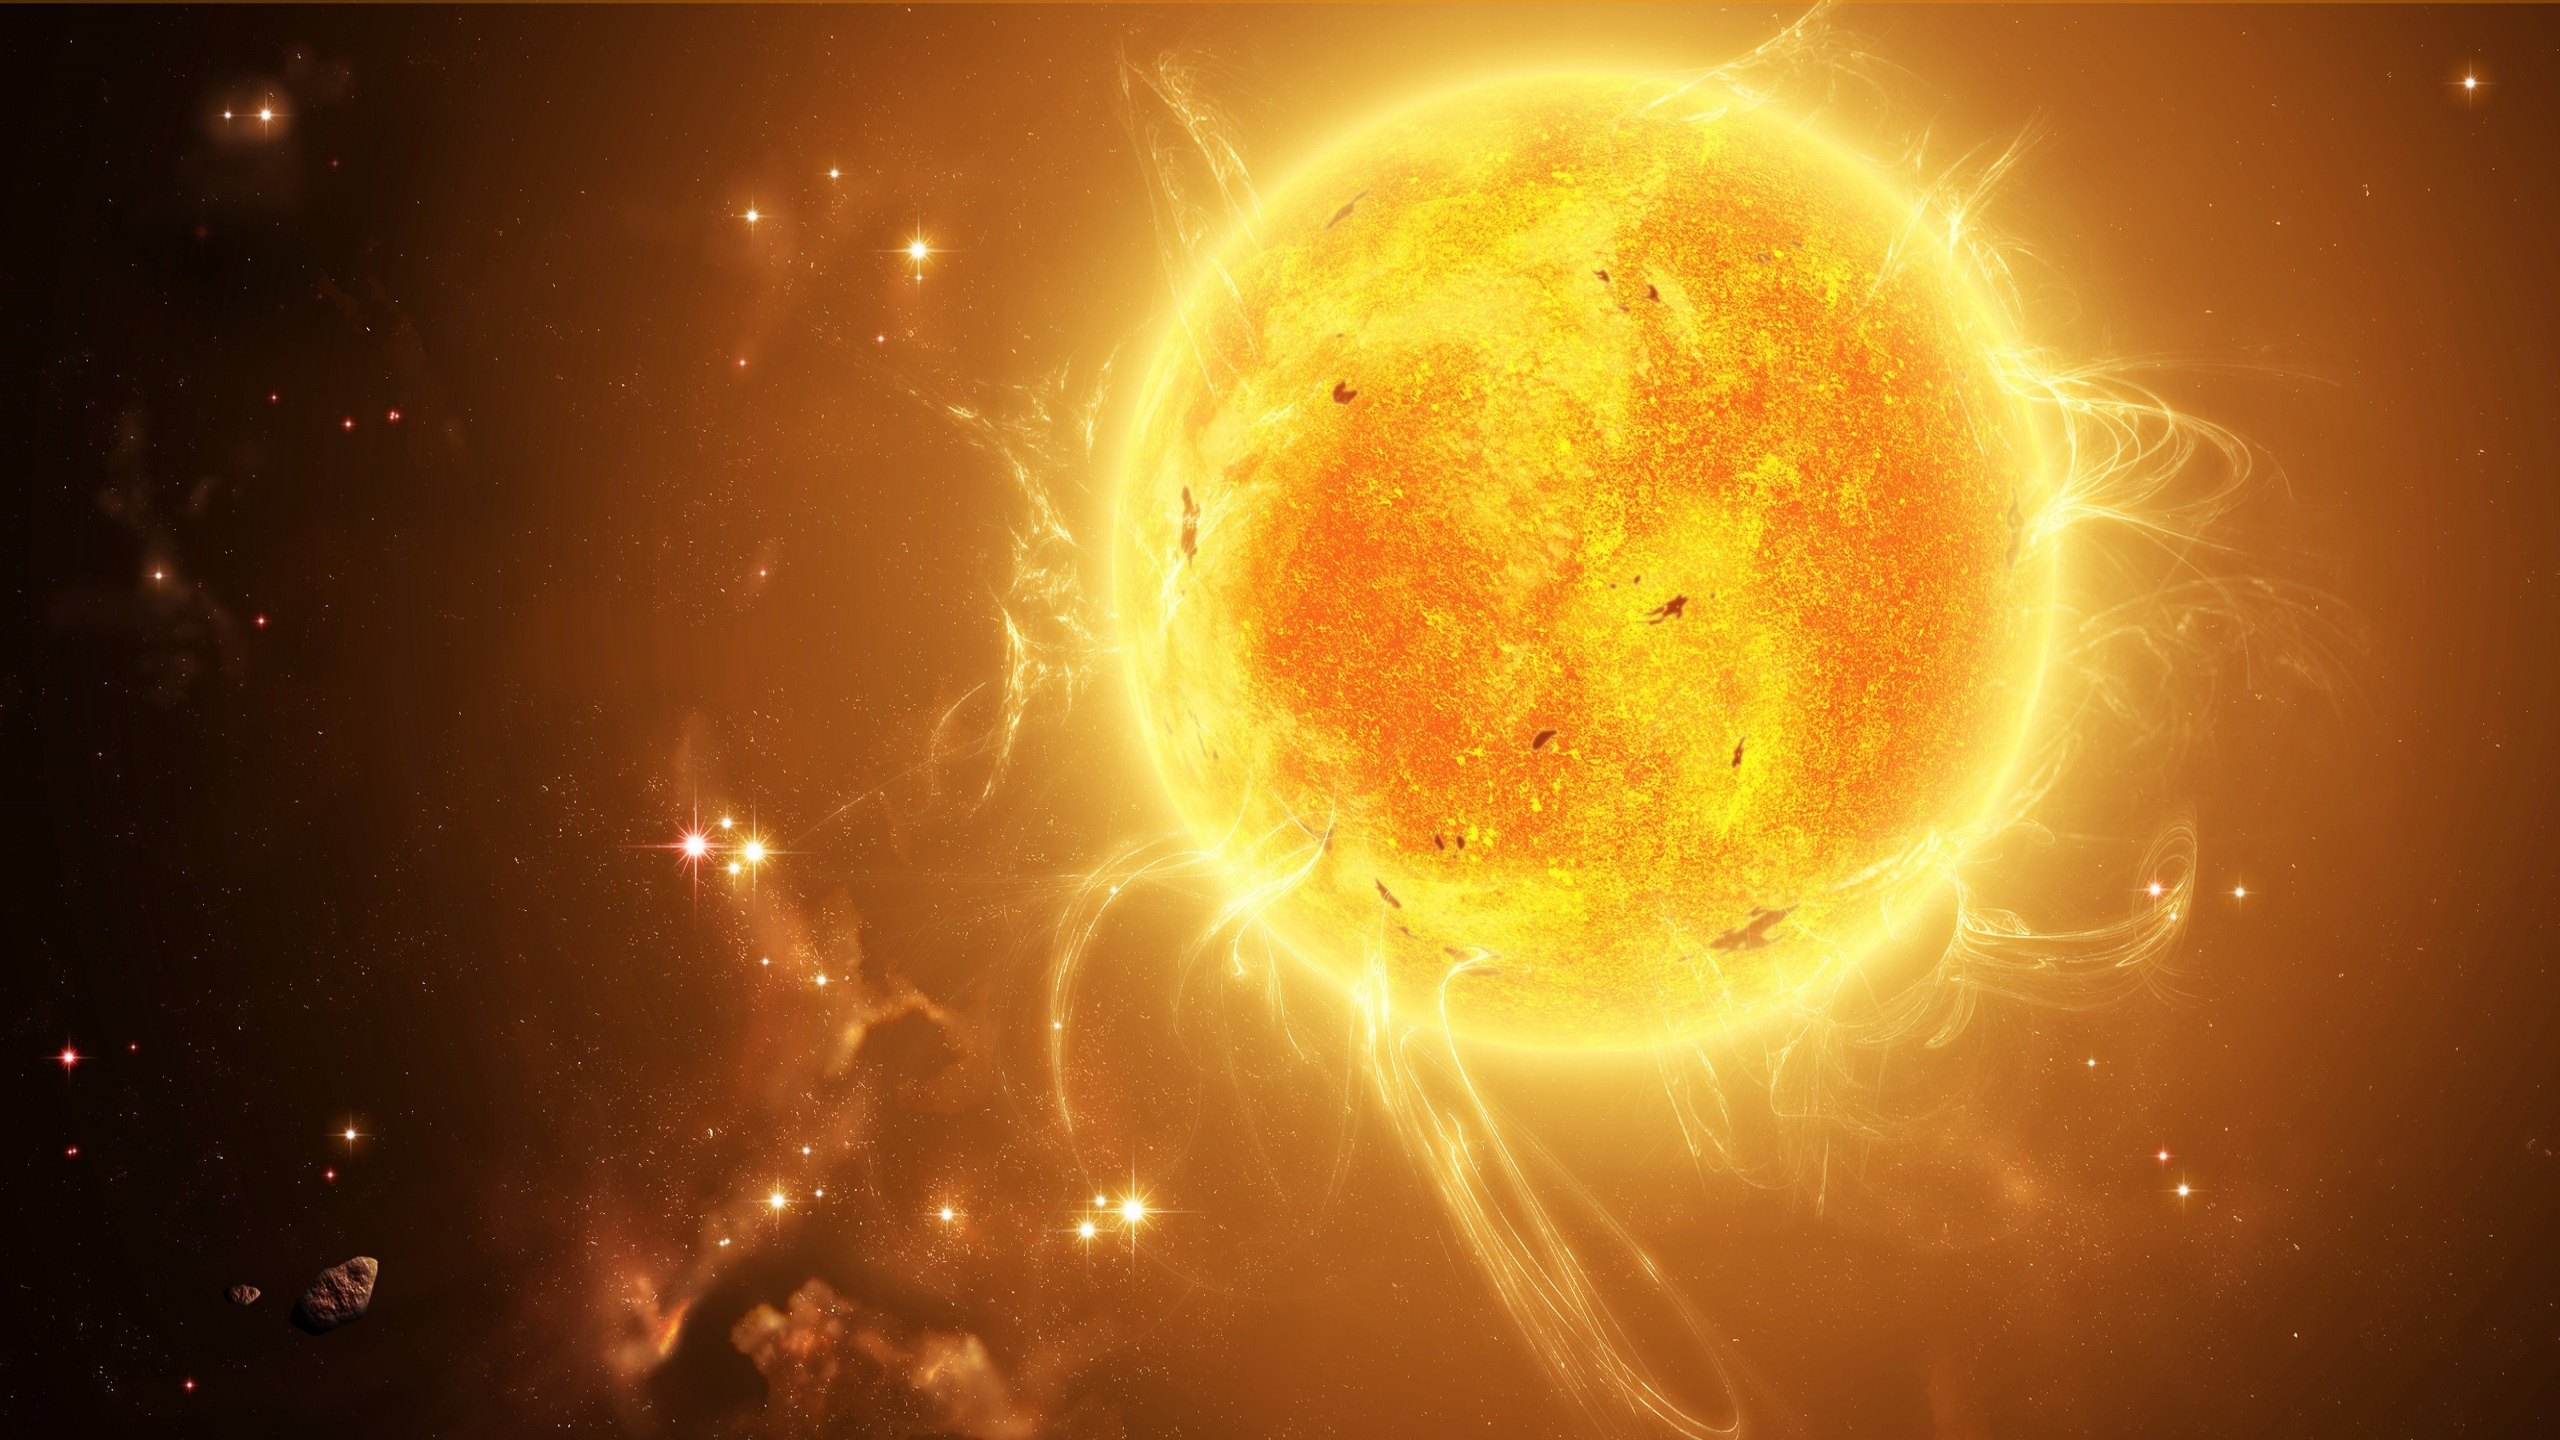 Space sun wallpapers 2560x1440 1017902 - Space 2560 x 1440 ...